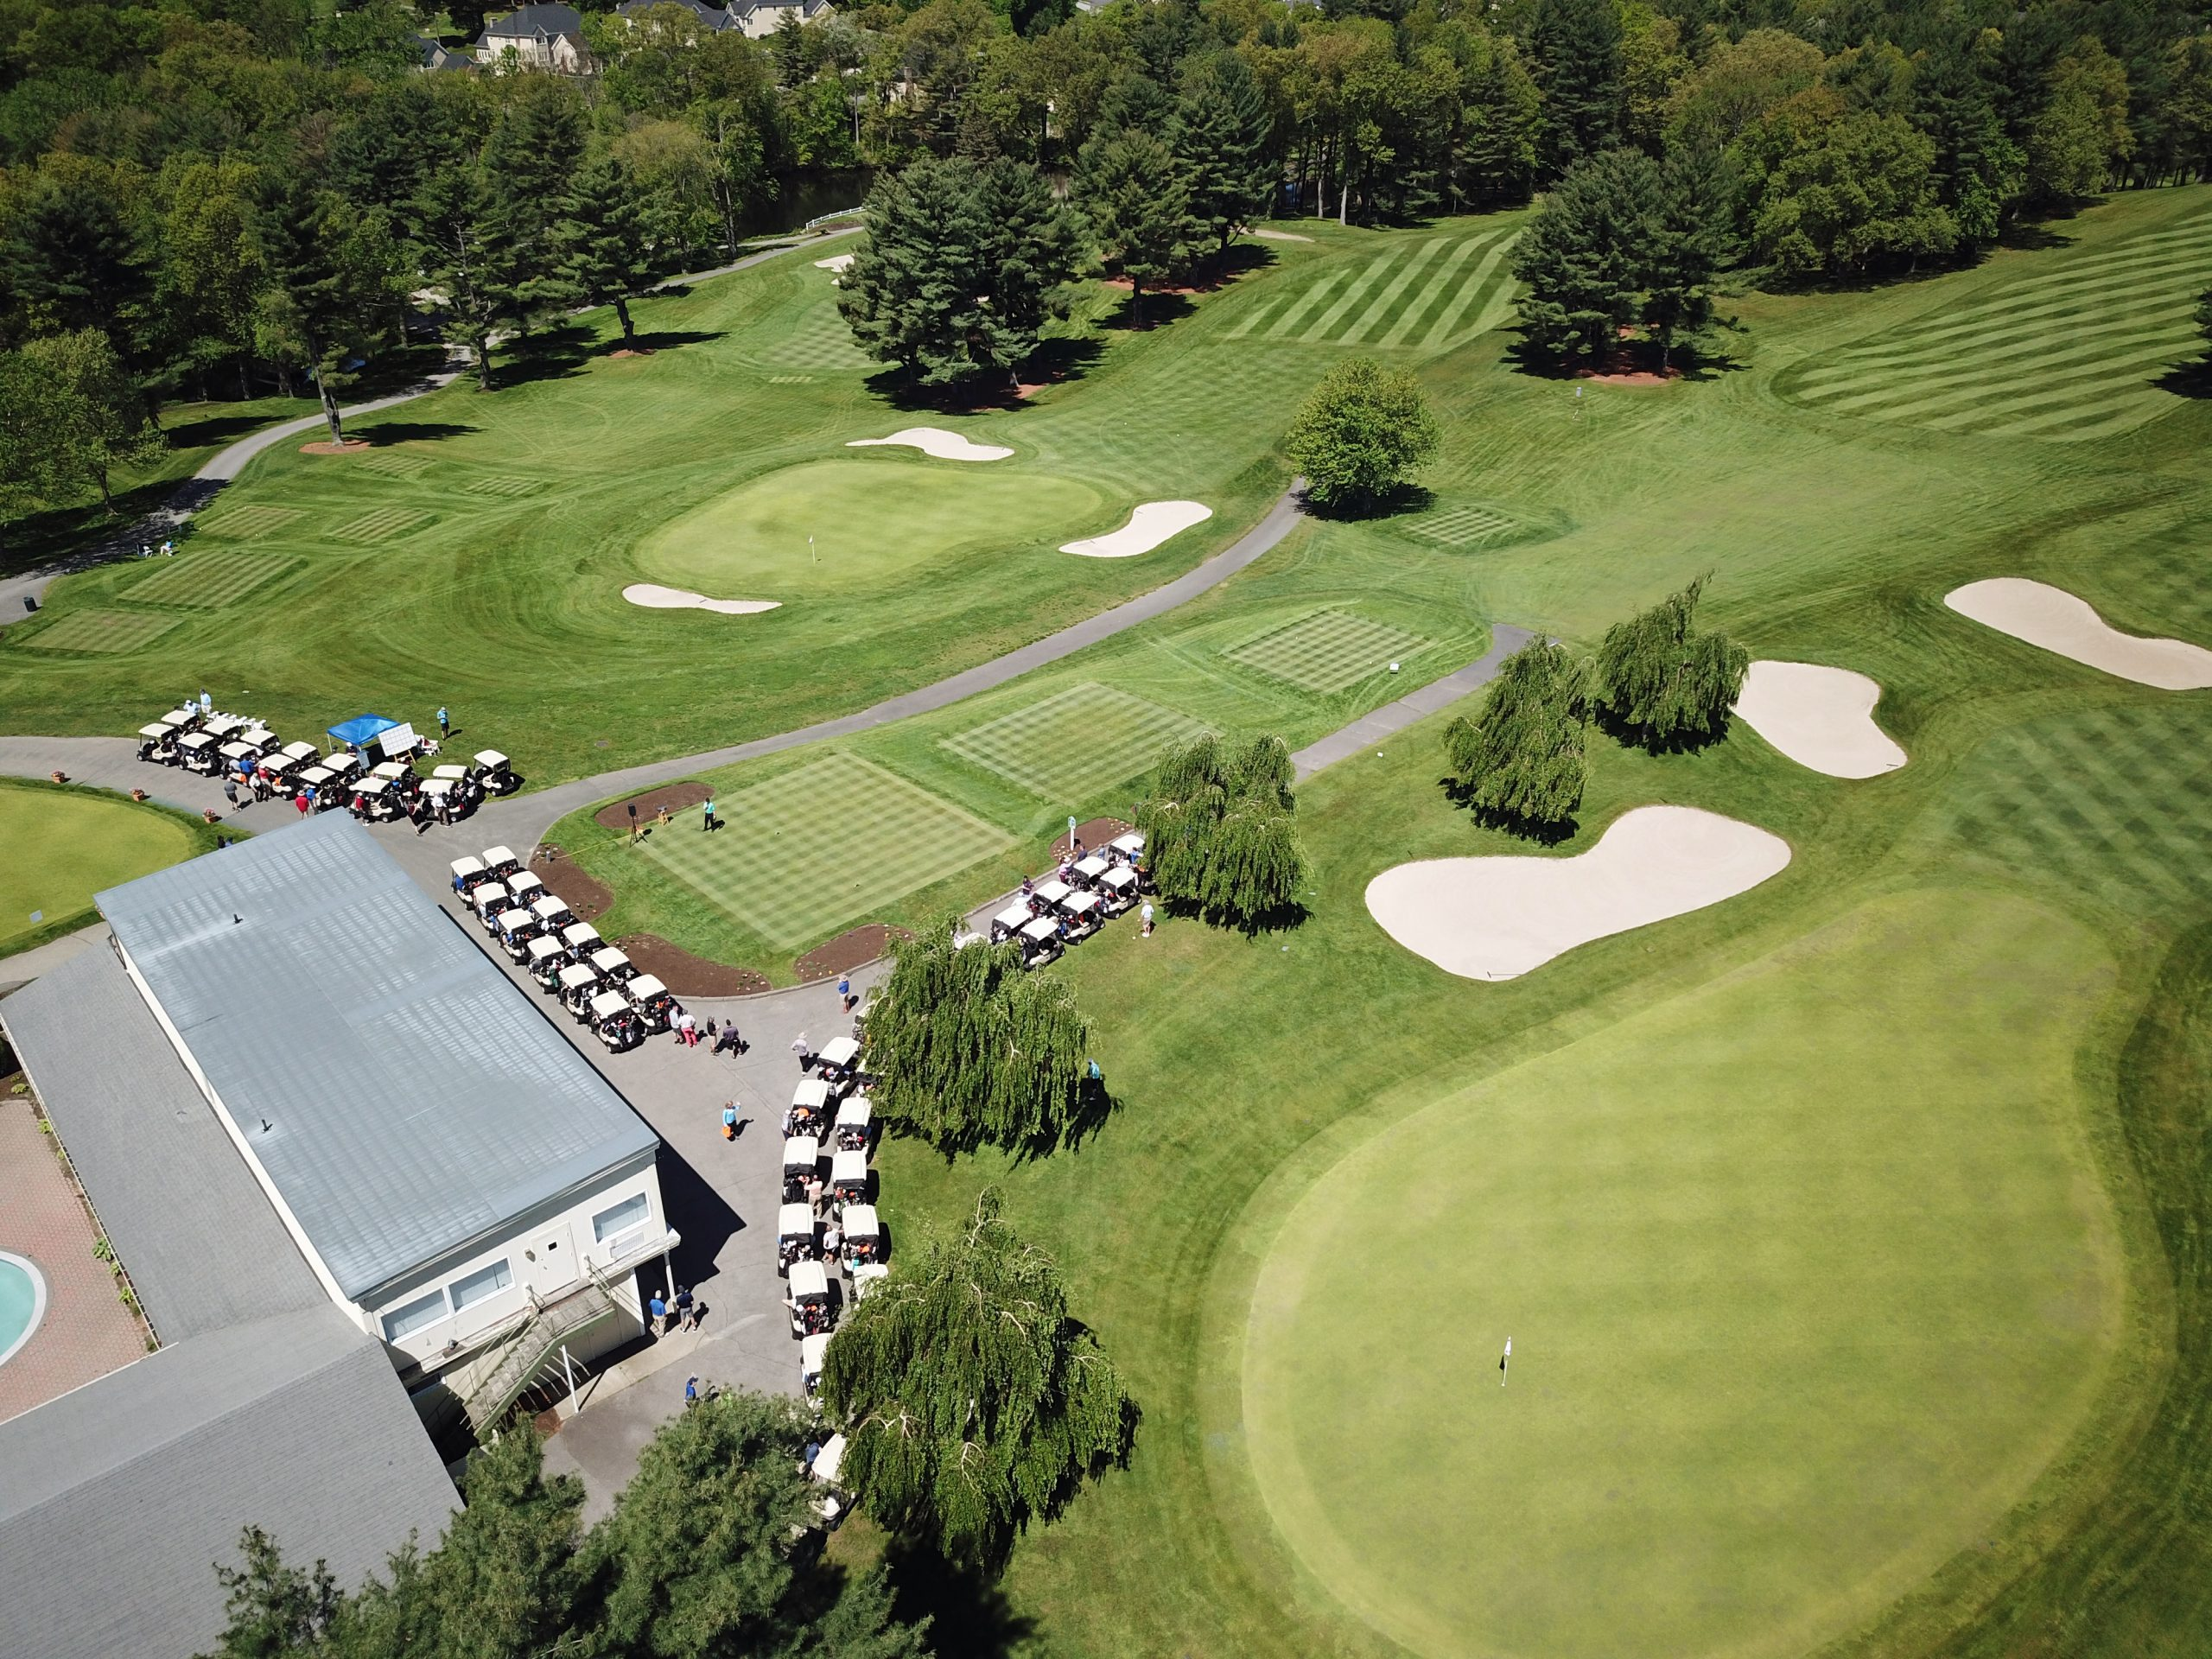 golf course aerial view with clubhouse